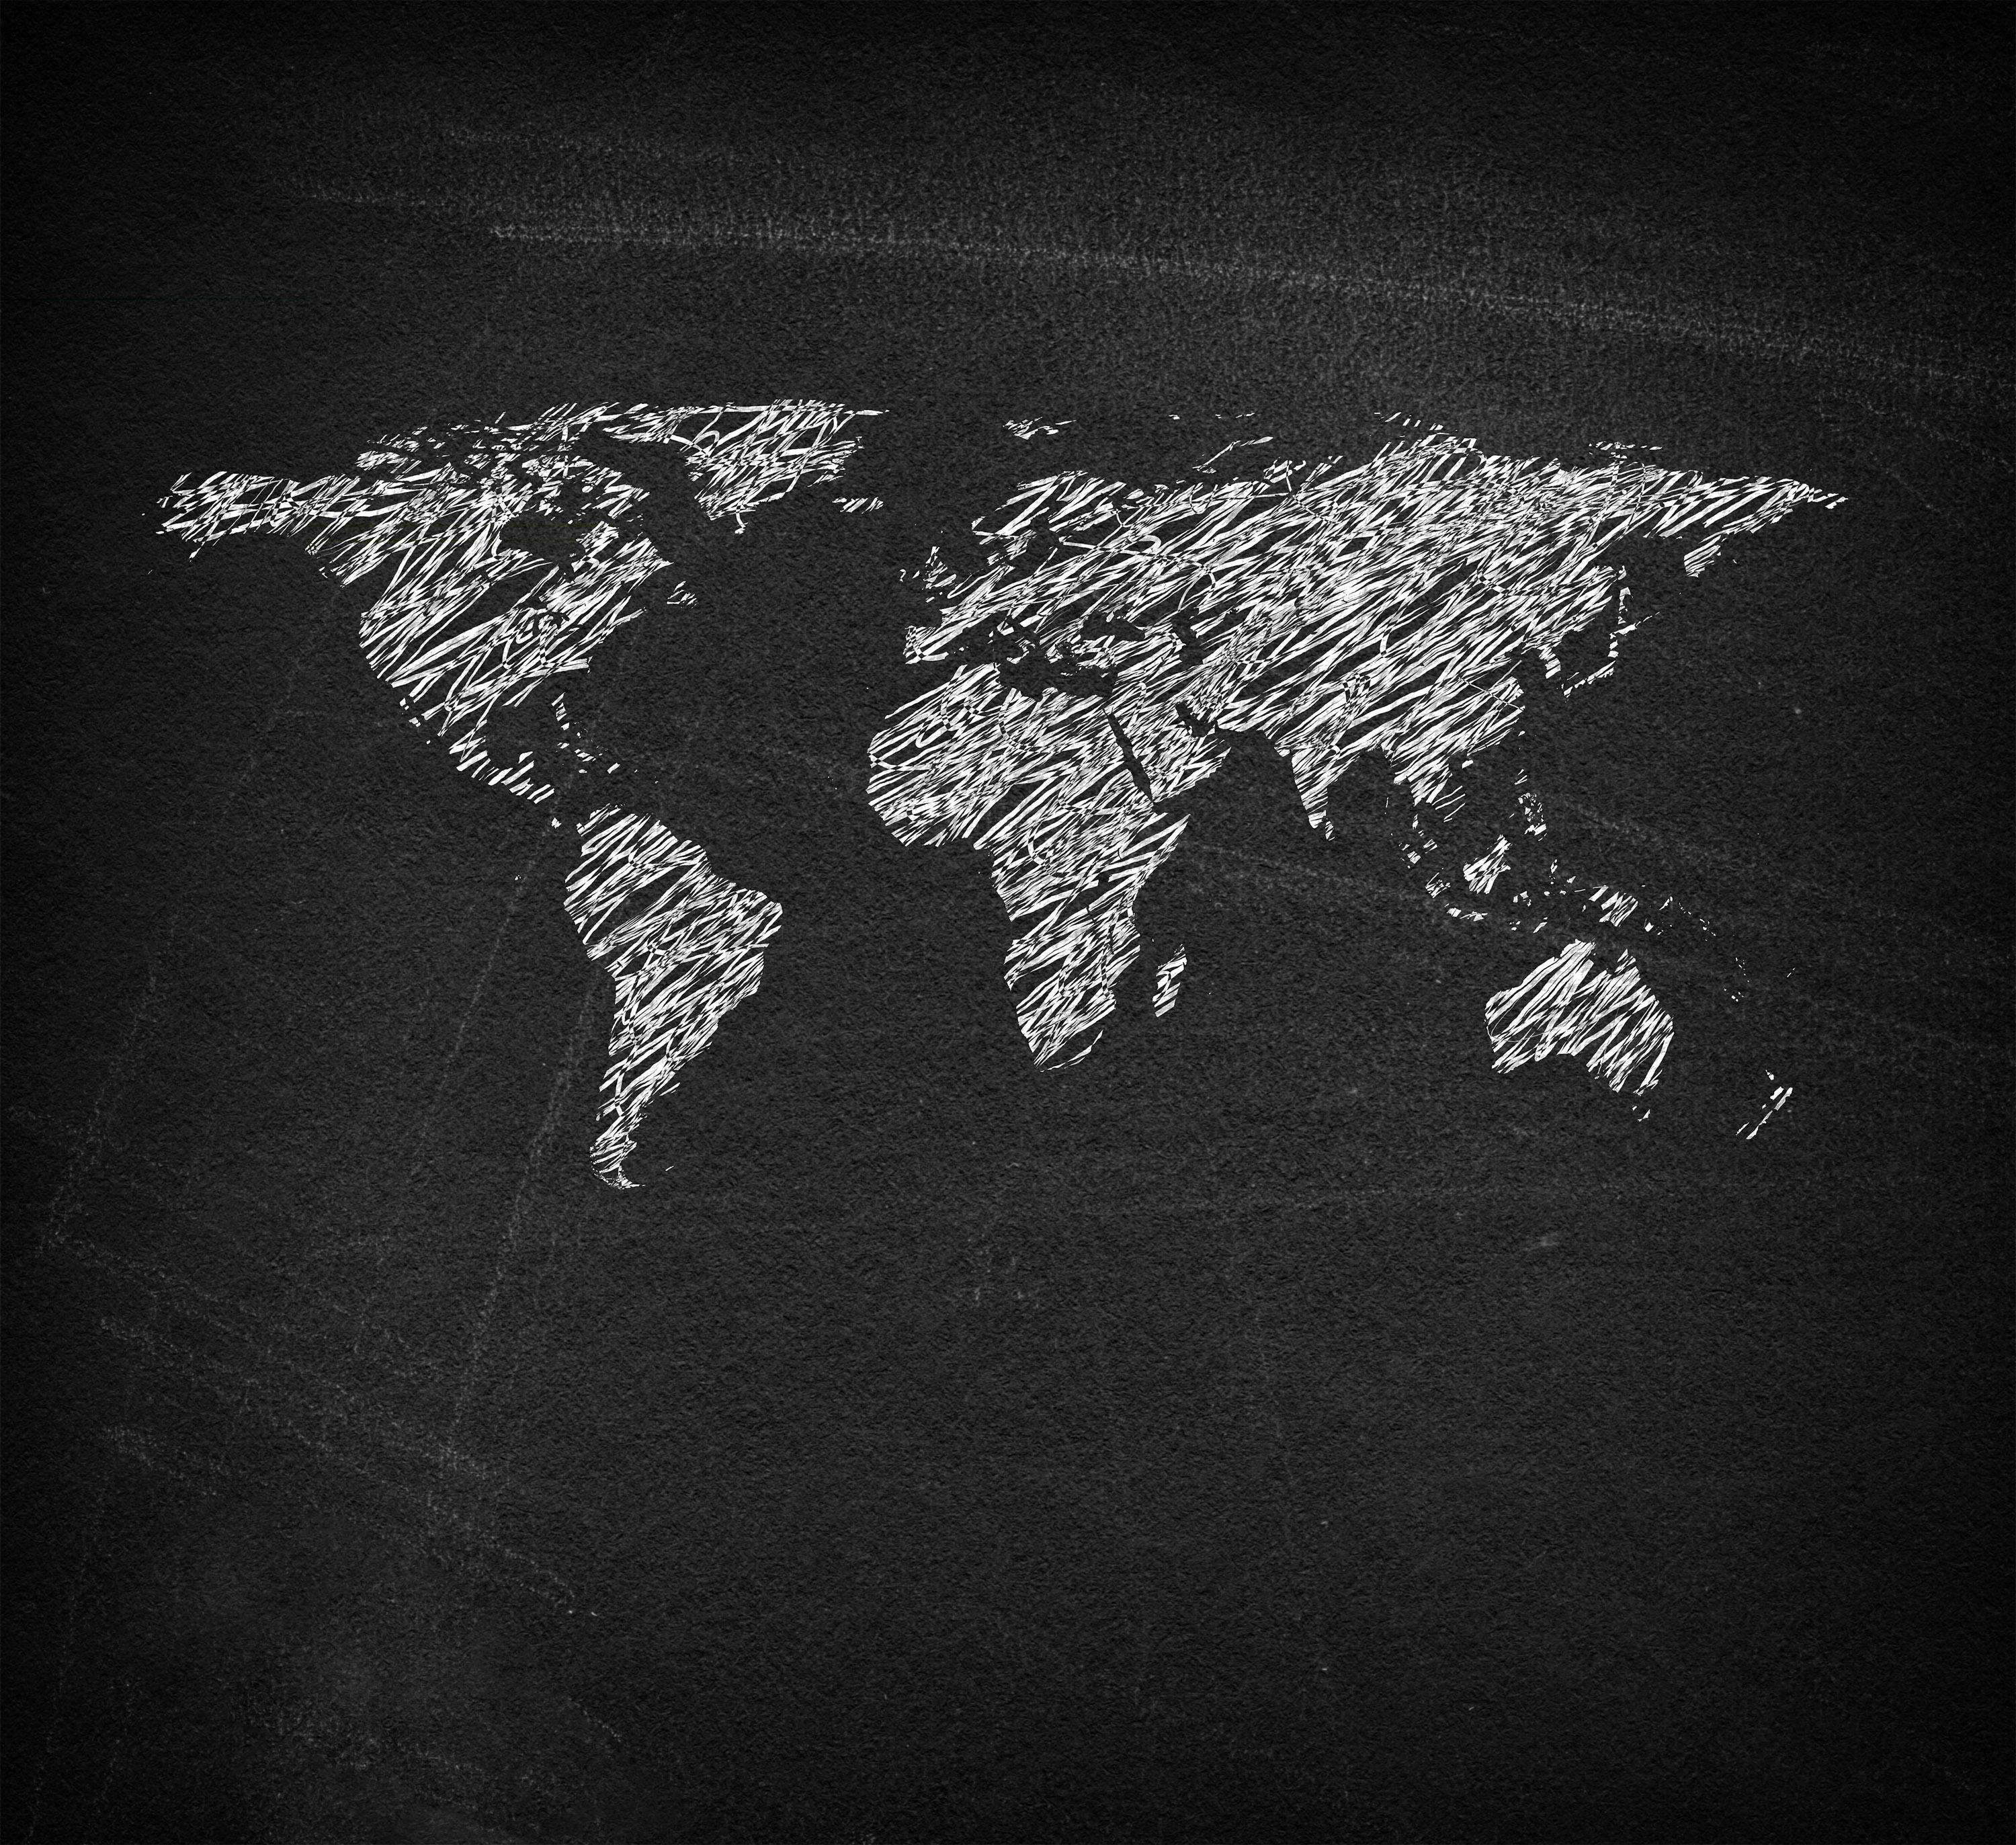 World map on blackboard - sketchy looks photo